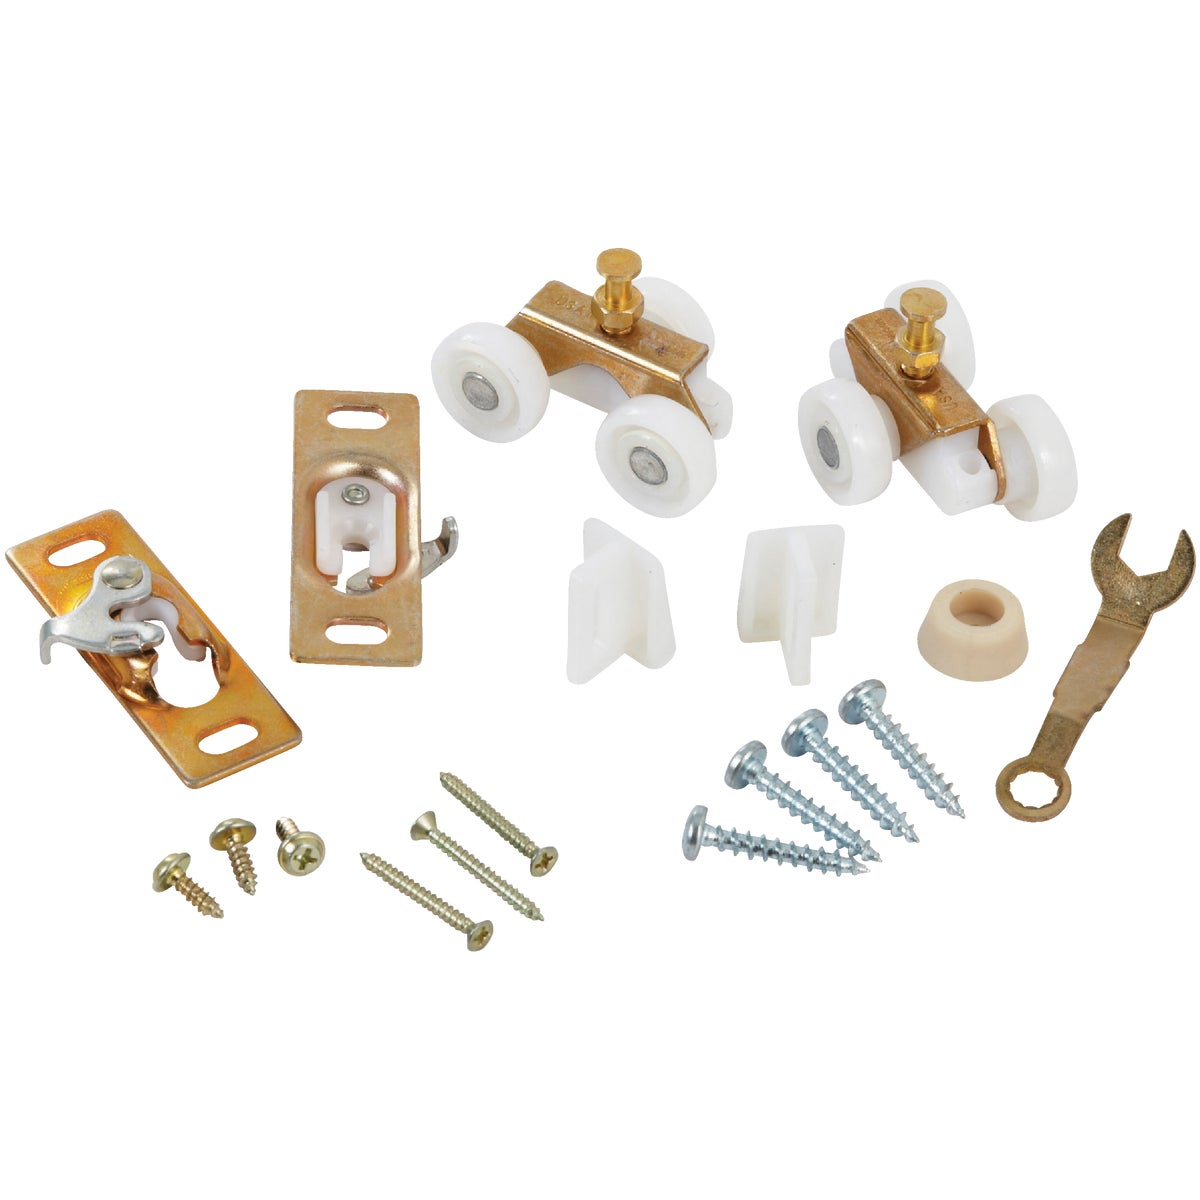 Pocket Door Hardware Set